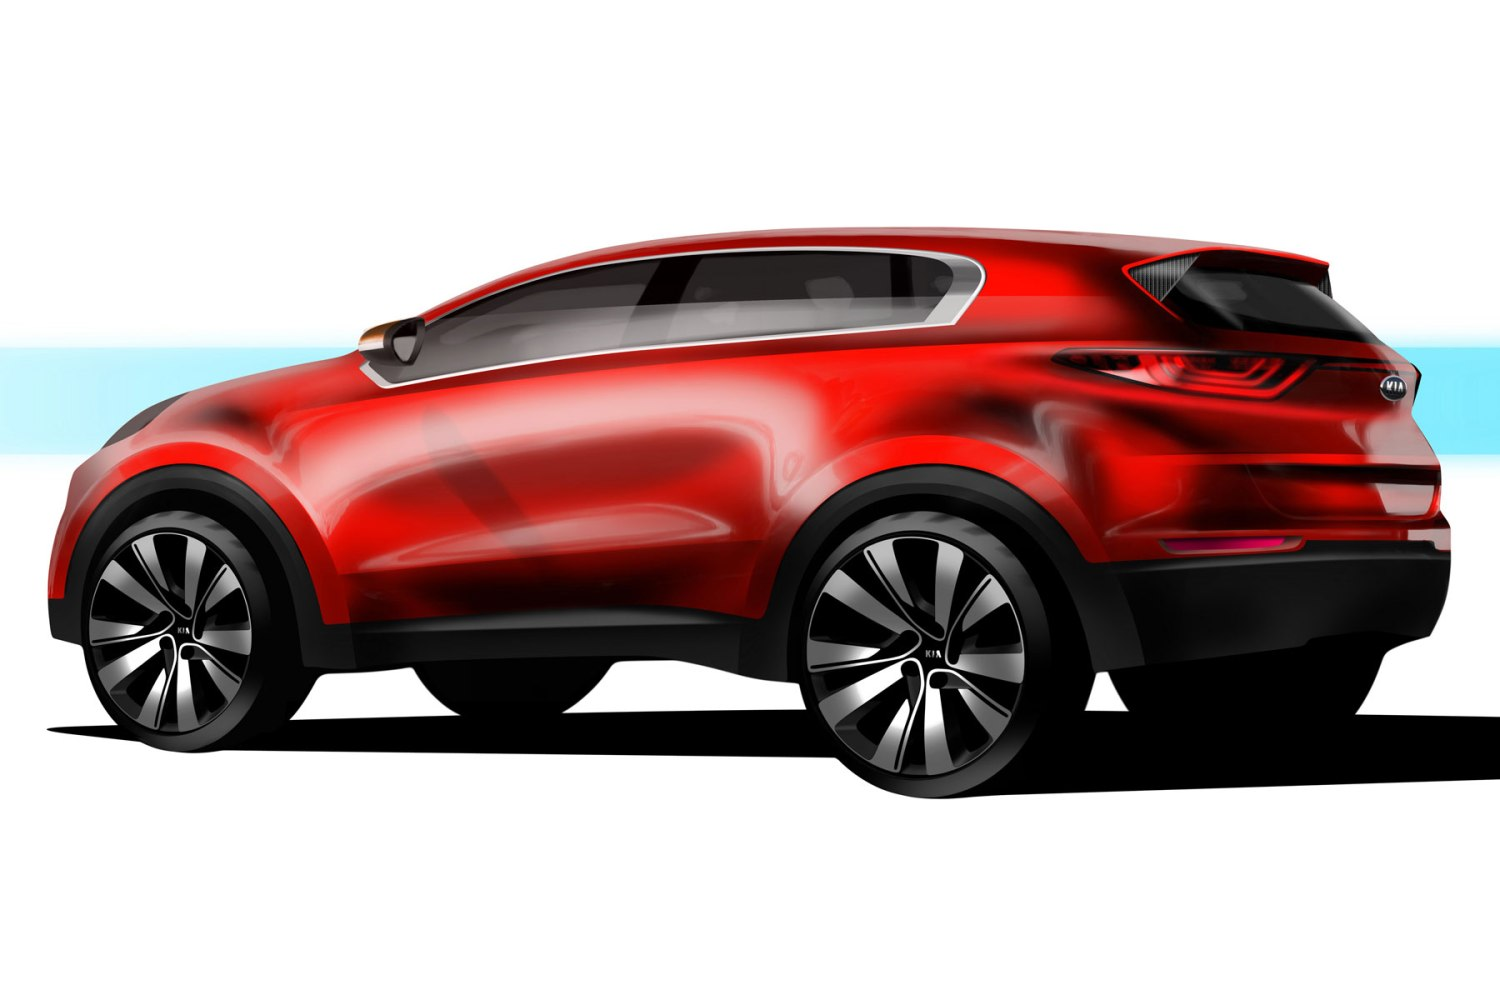 2016 Kia Sportage teased ahead of Frankfurt debut